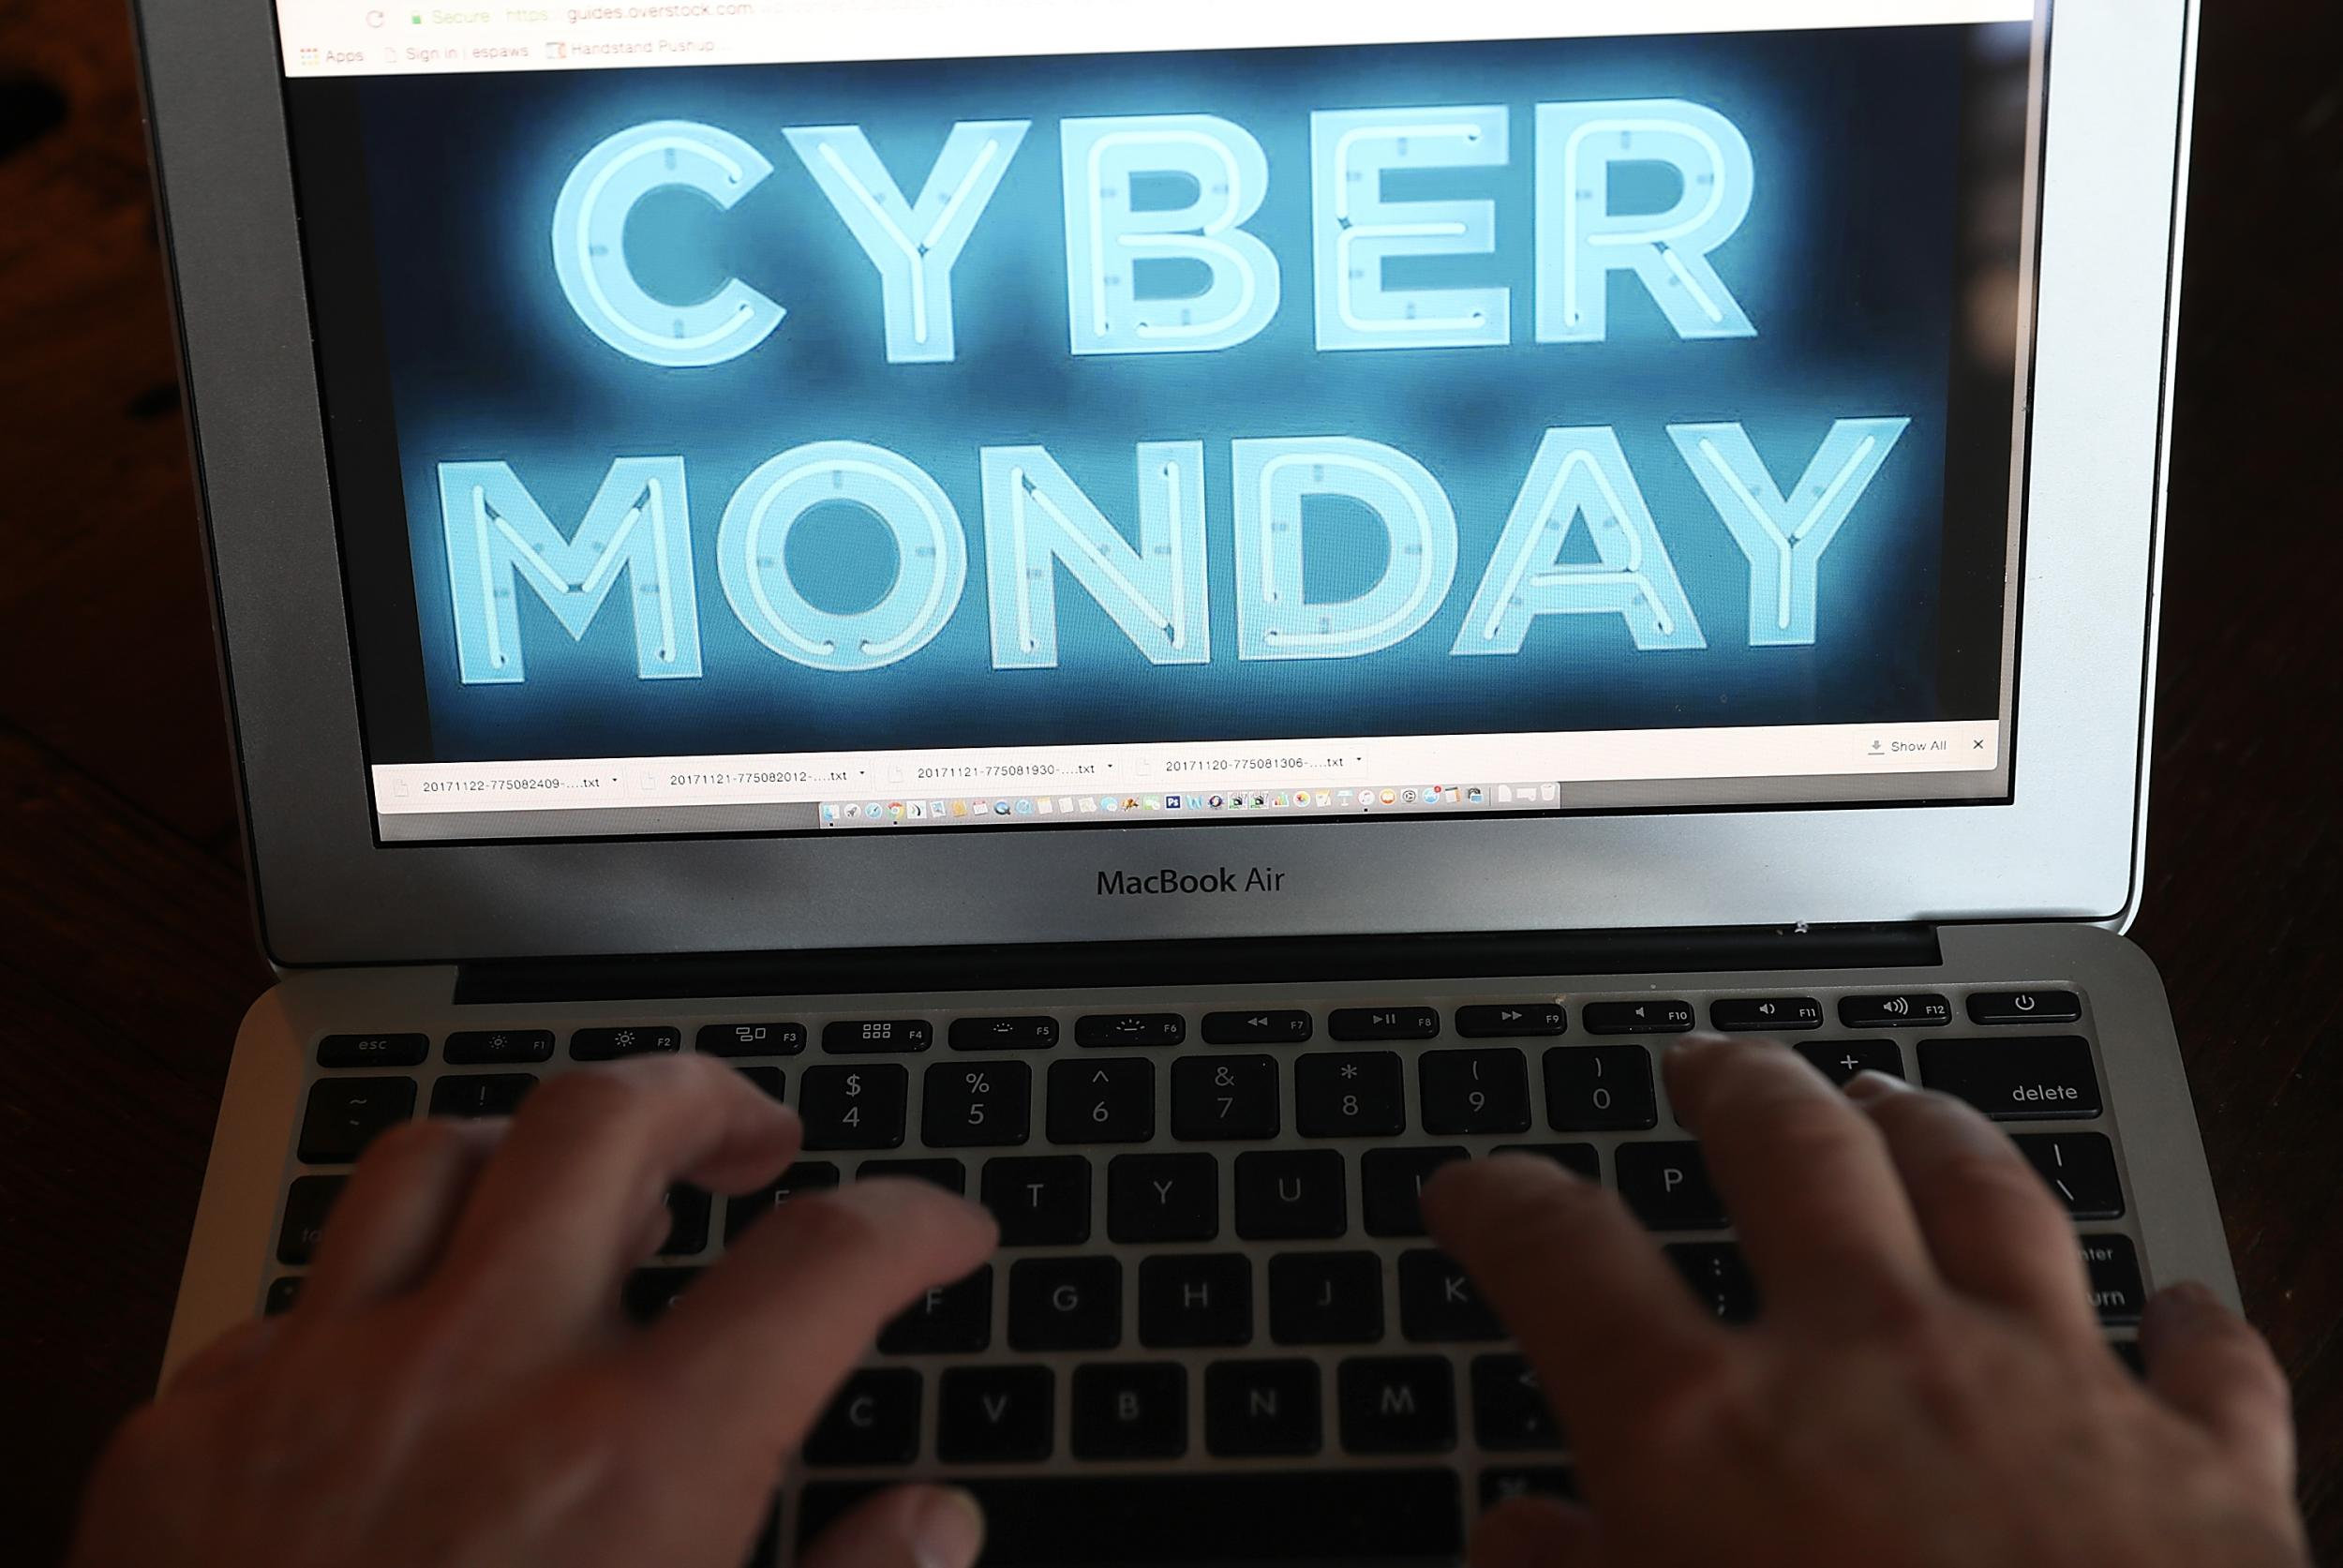 Cyber Monday: When is it and how is it different from Black Friday?